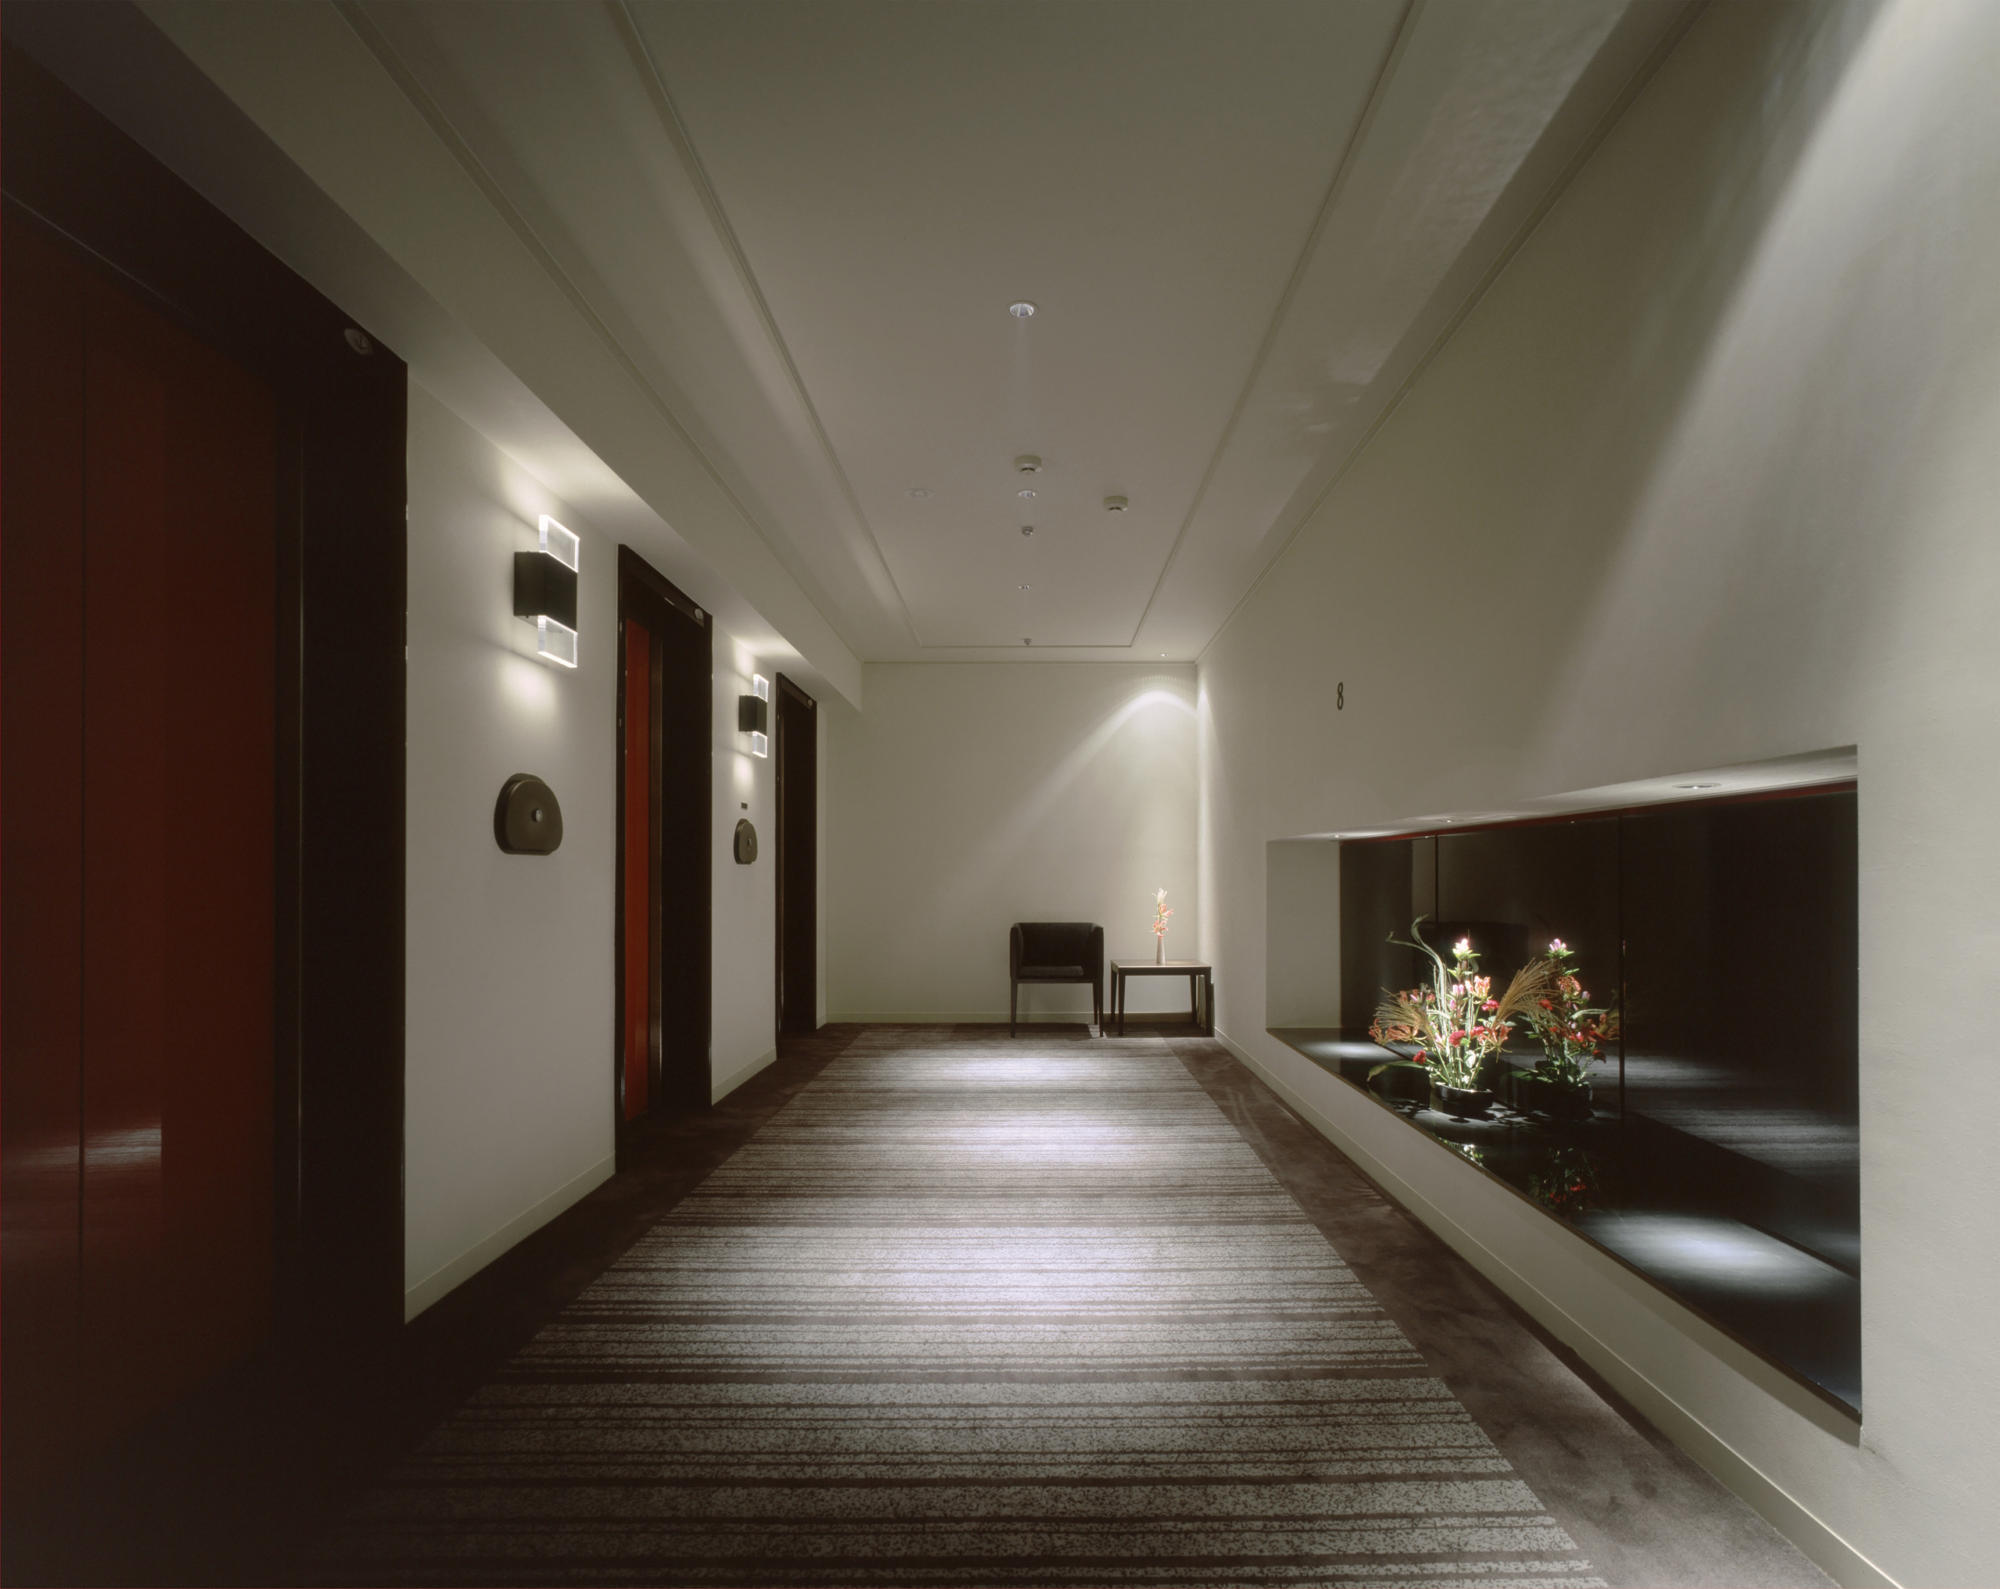 Kyoto Tokyu Hotel 7F&8F Room Renovation | WORKS |